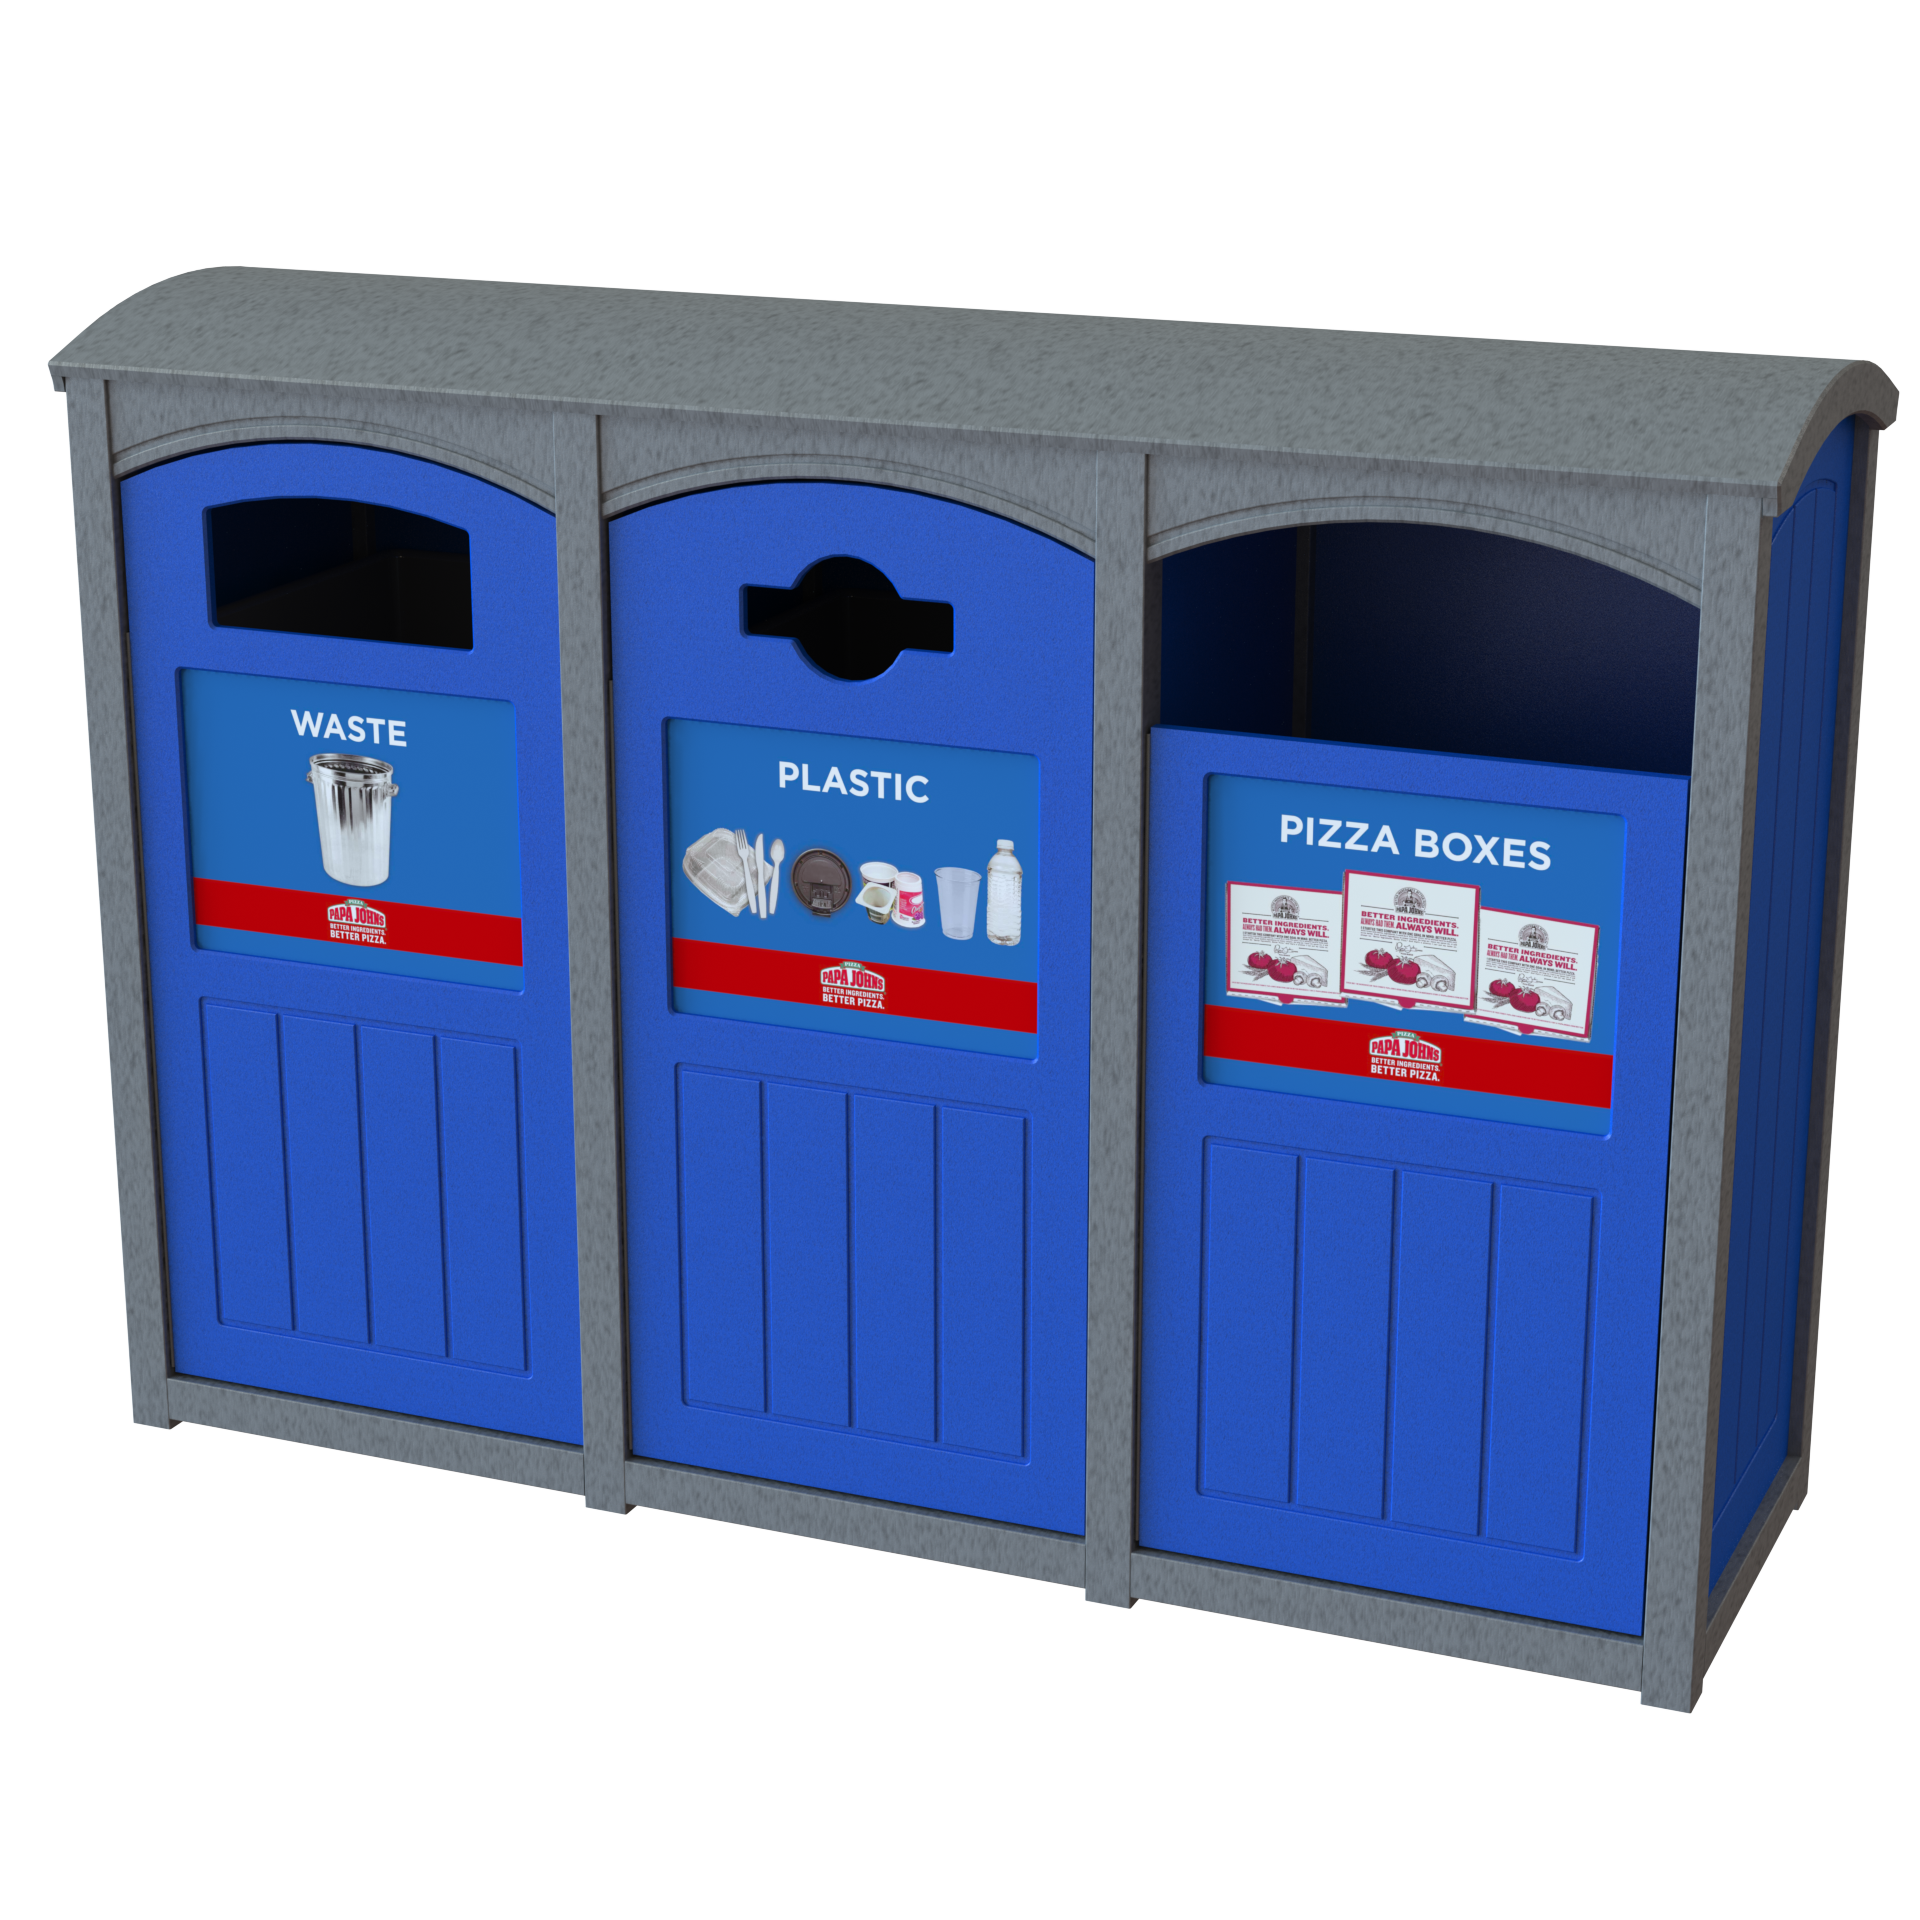 restaurant recycling bins and programs